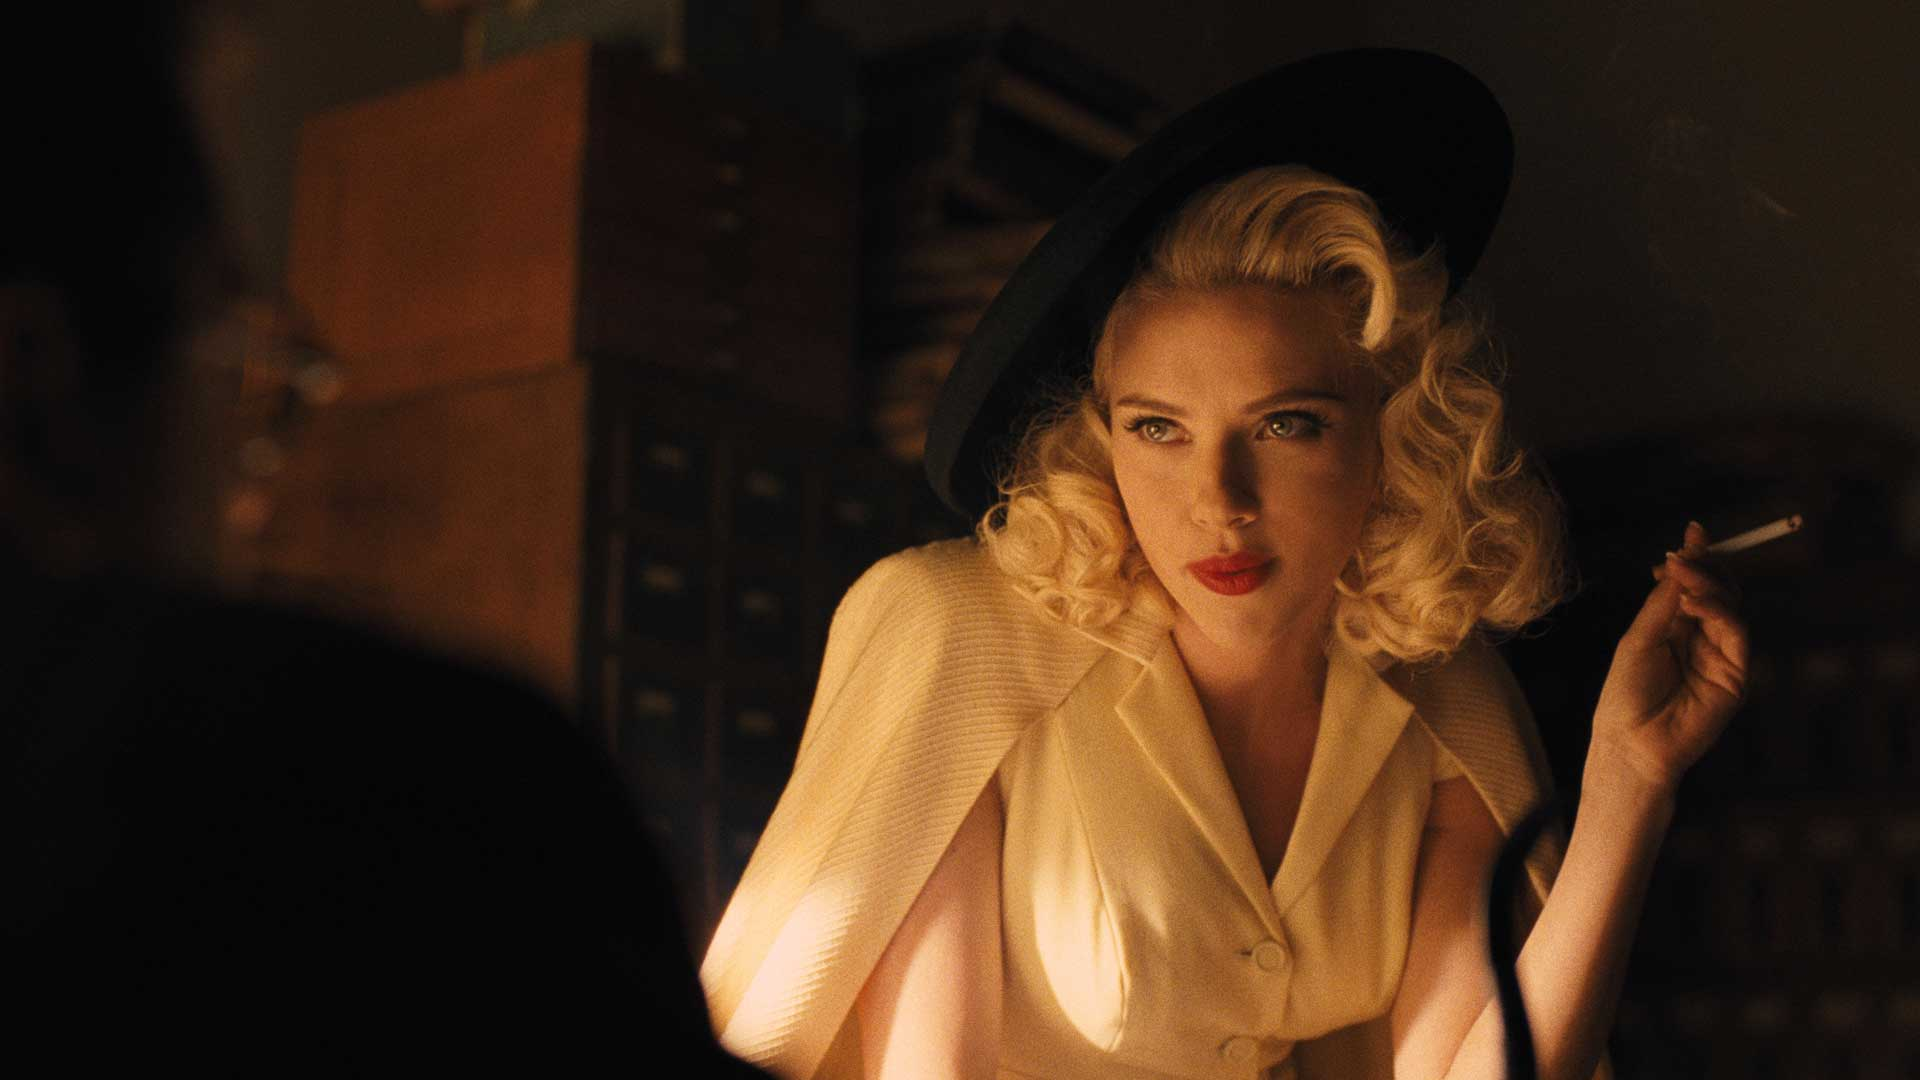 Hail Caesar - Scarlett Johansson Net Worth, Awards, Movies and Private Life, Pictures and Wallpapers